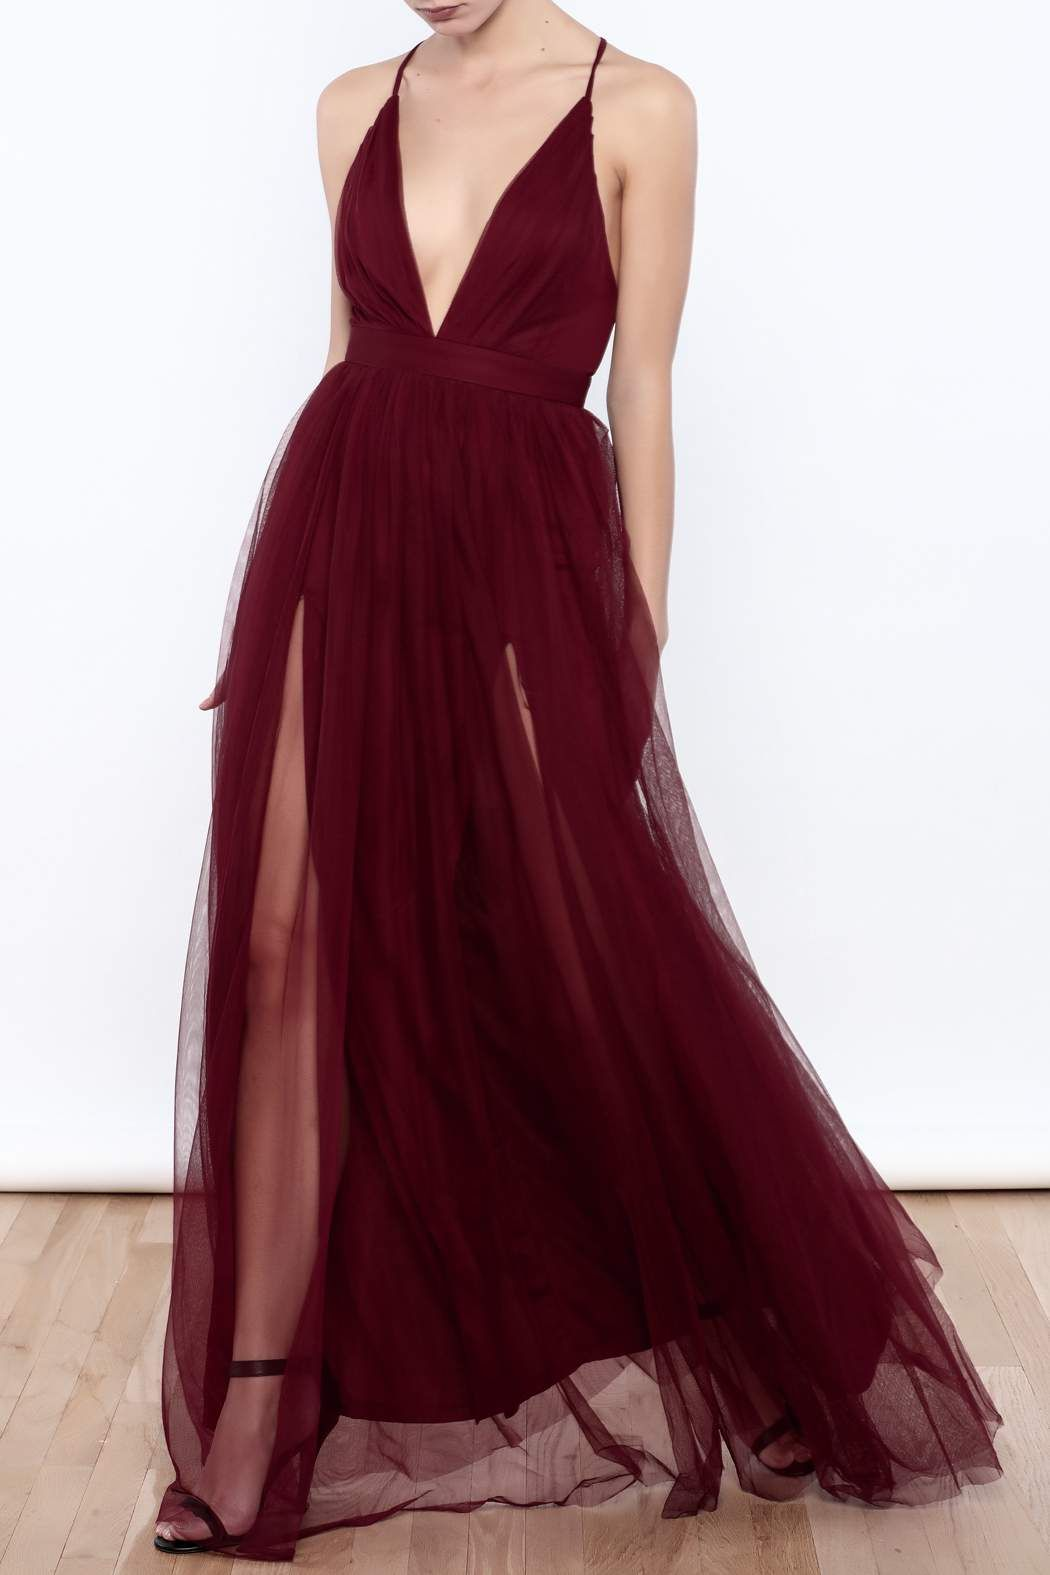 c73866f6c4 Deep v-neck dress with a layered tulle skirt